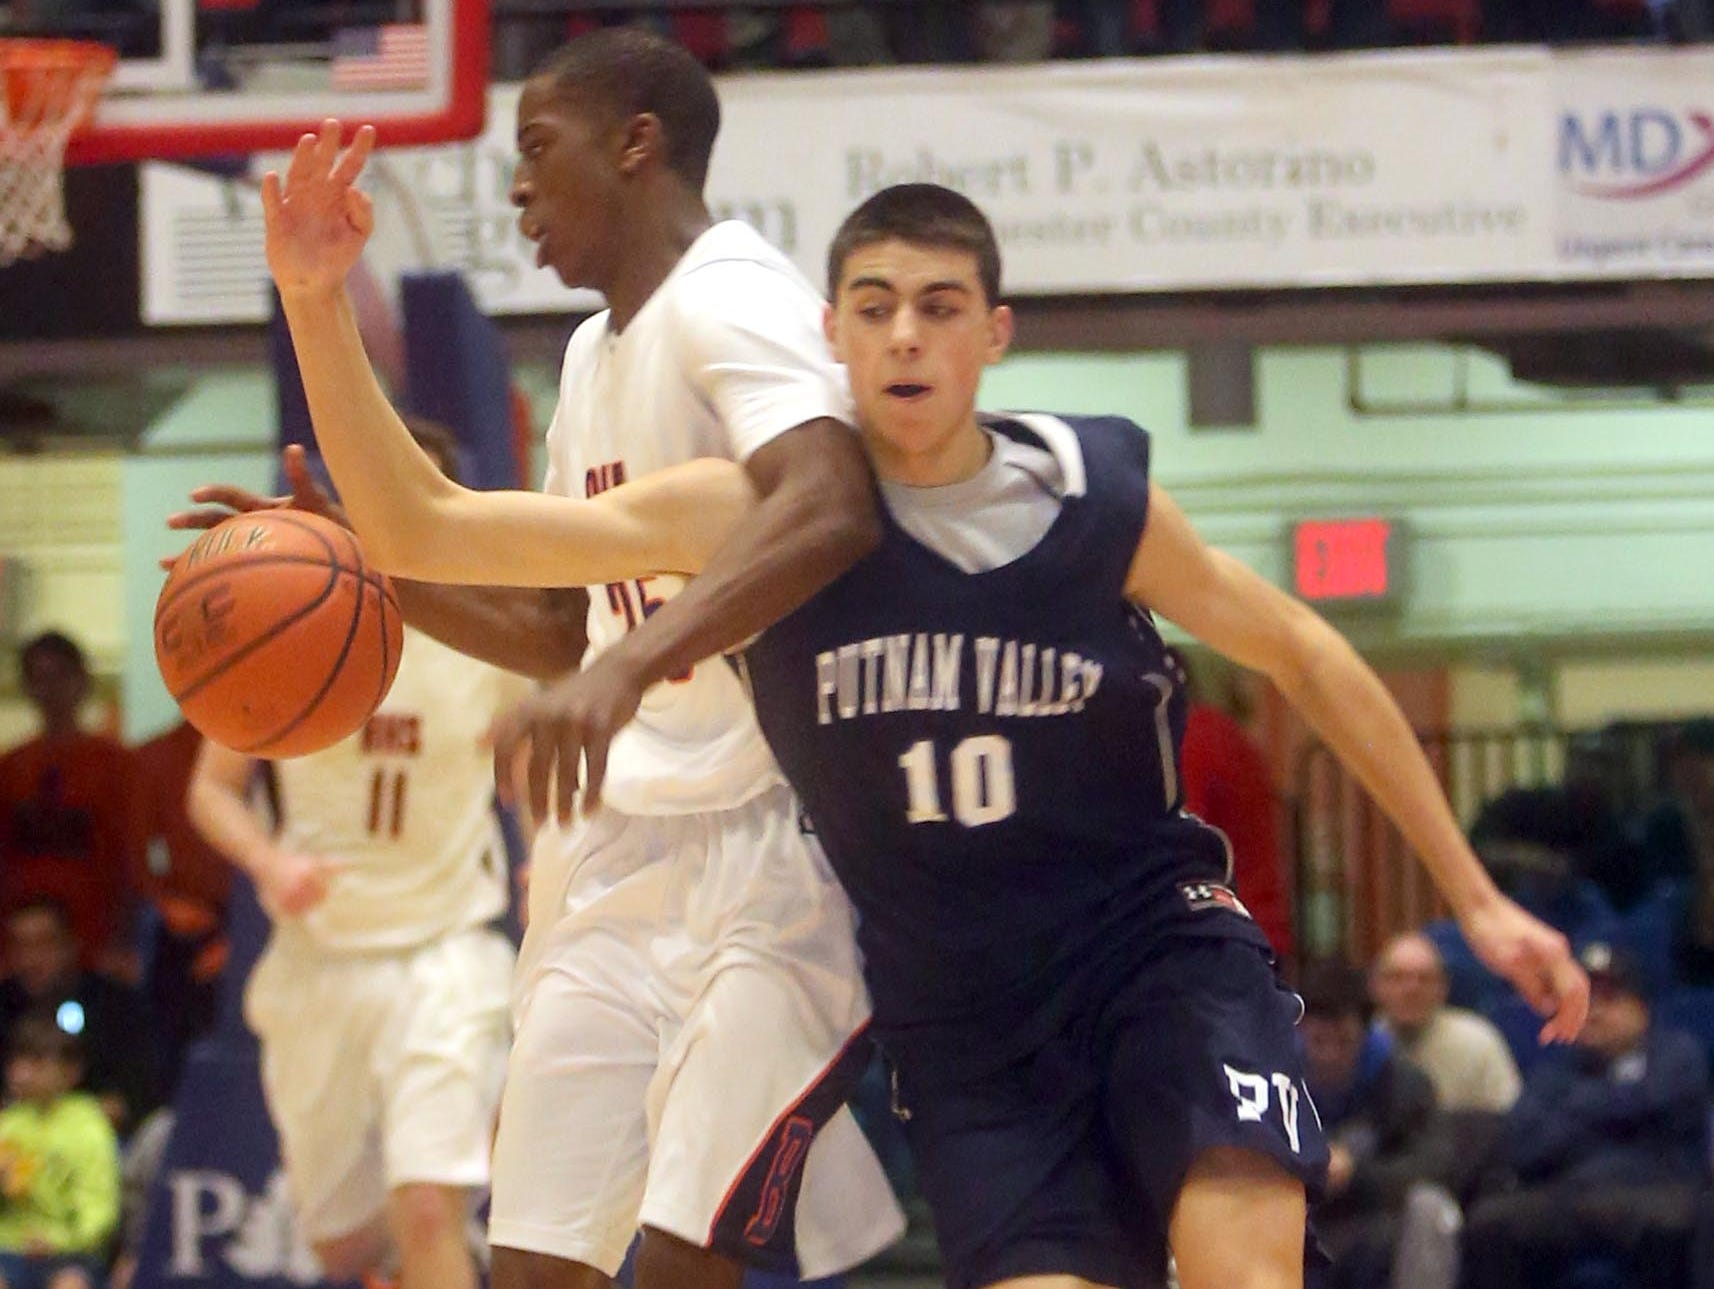 Putnam Valley's Harrison Deegan tries to steal the ball from Briarcliff's Josiah Cobbs during the the Section 1 Class B basketball championship at the Westchester County Center in White Plains Feb. 27, 2016. Briarcliff defeated Putnam Valley 53-42.